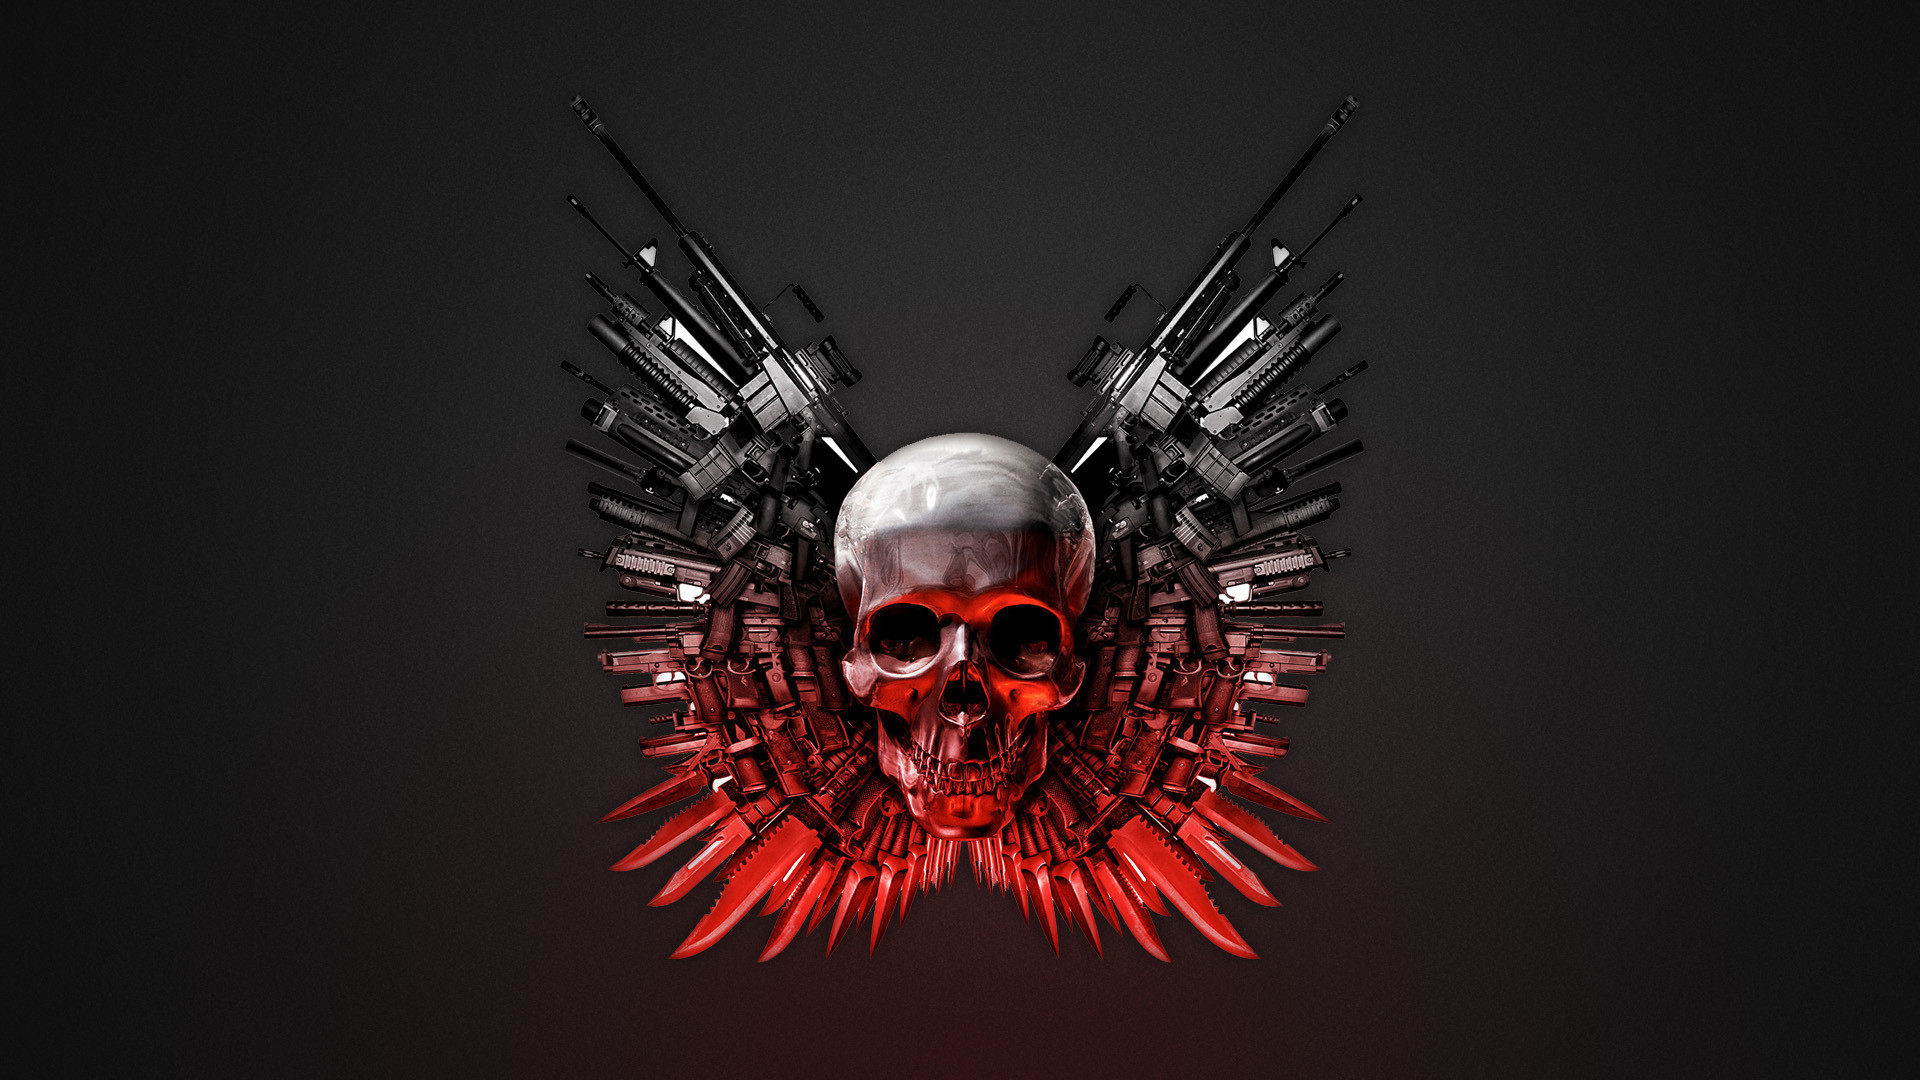 The Expendables Weapons Wallpapers HD Wallpapers 1920x1080